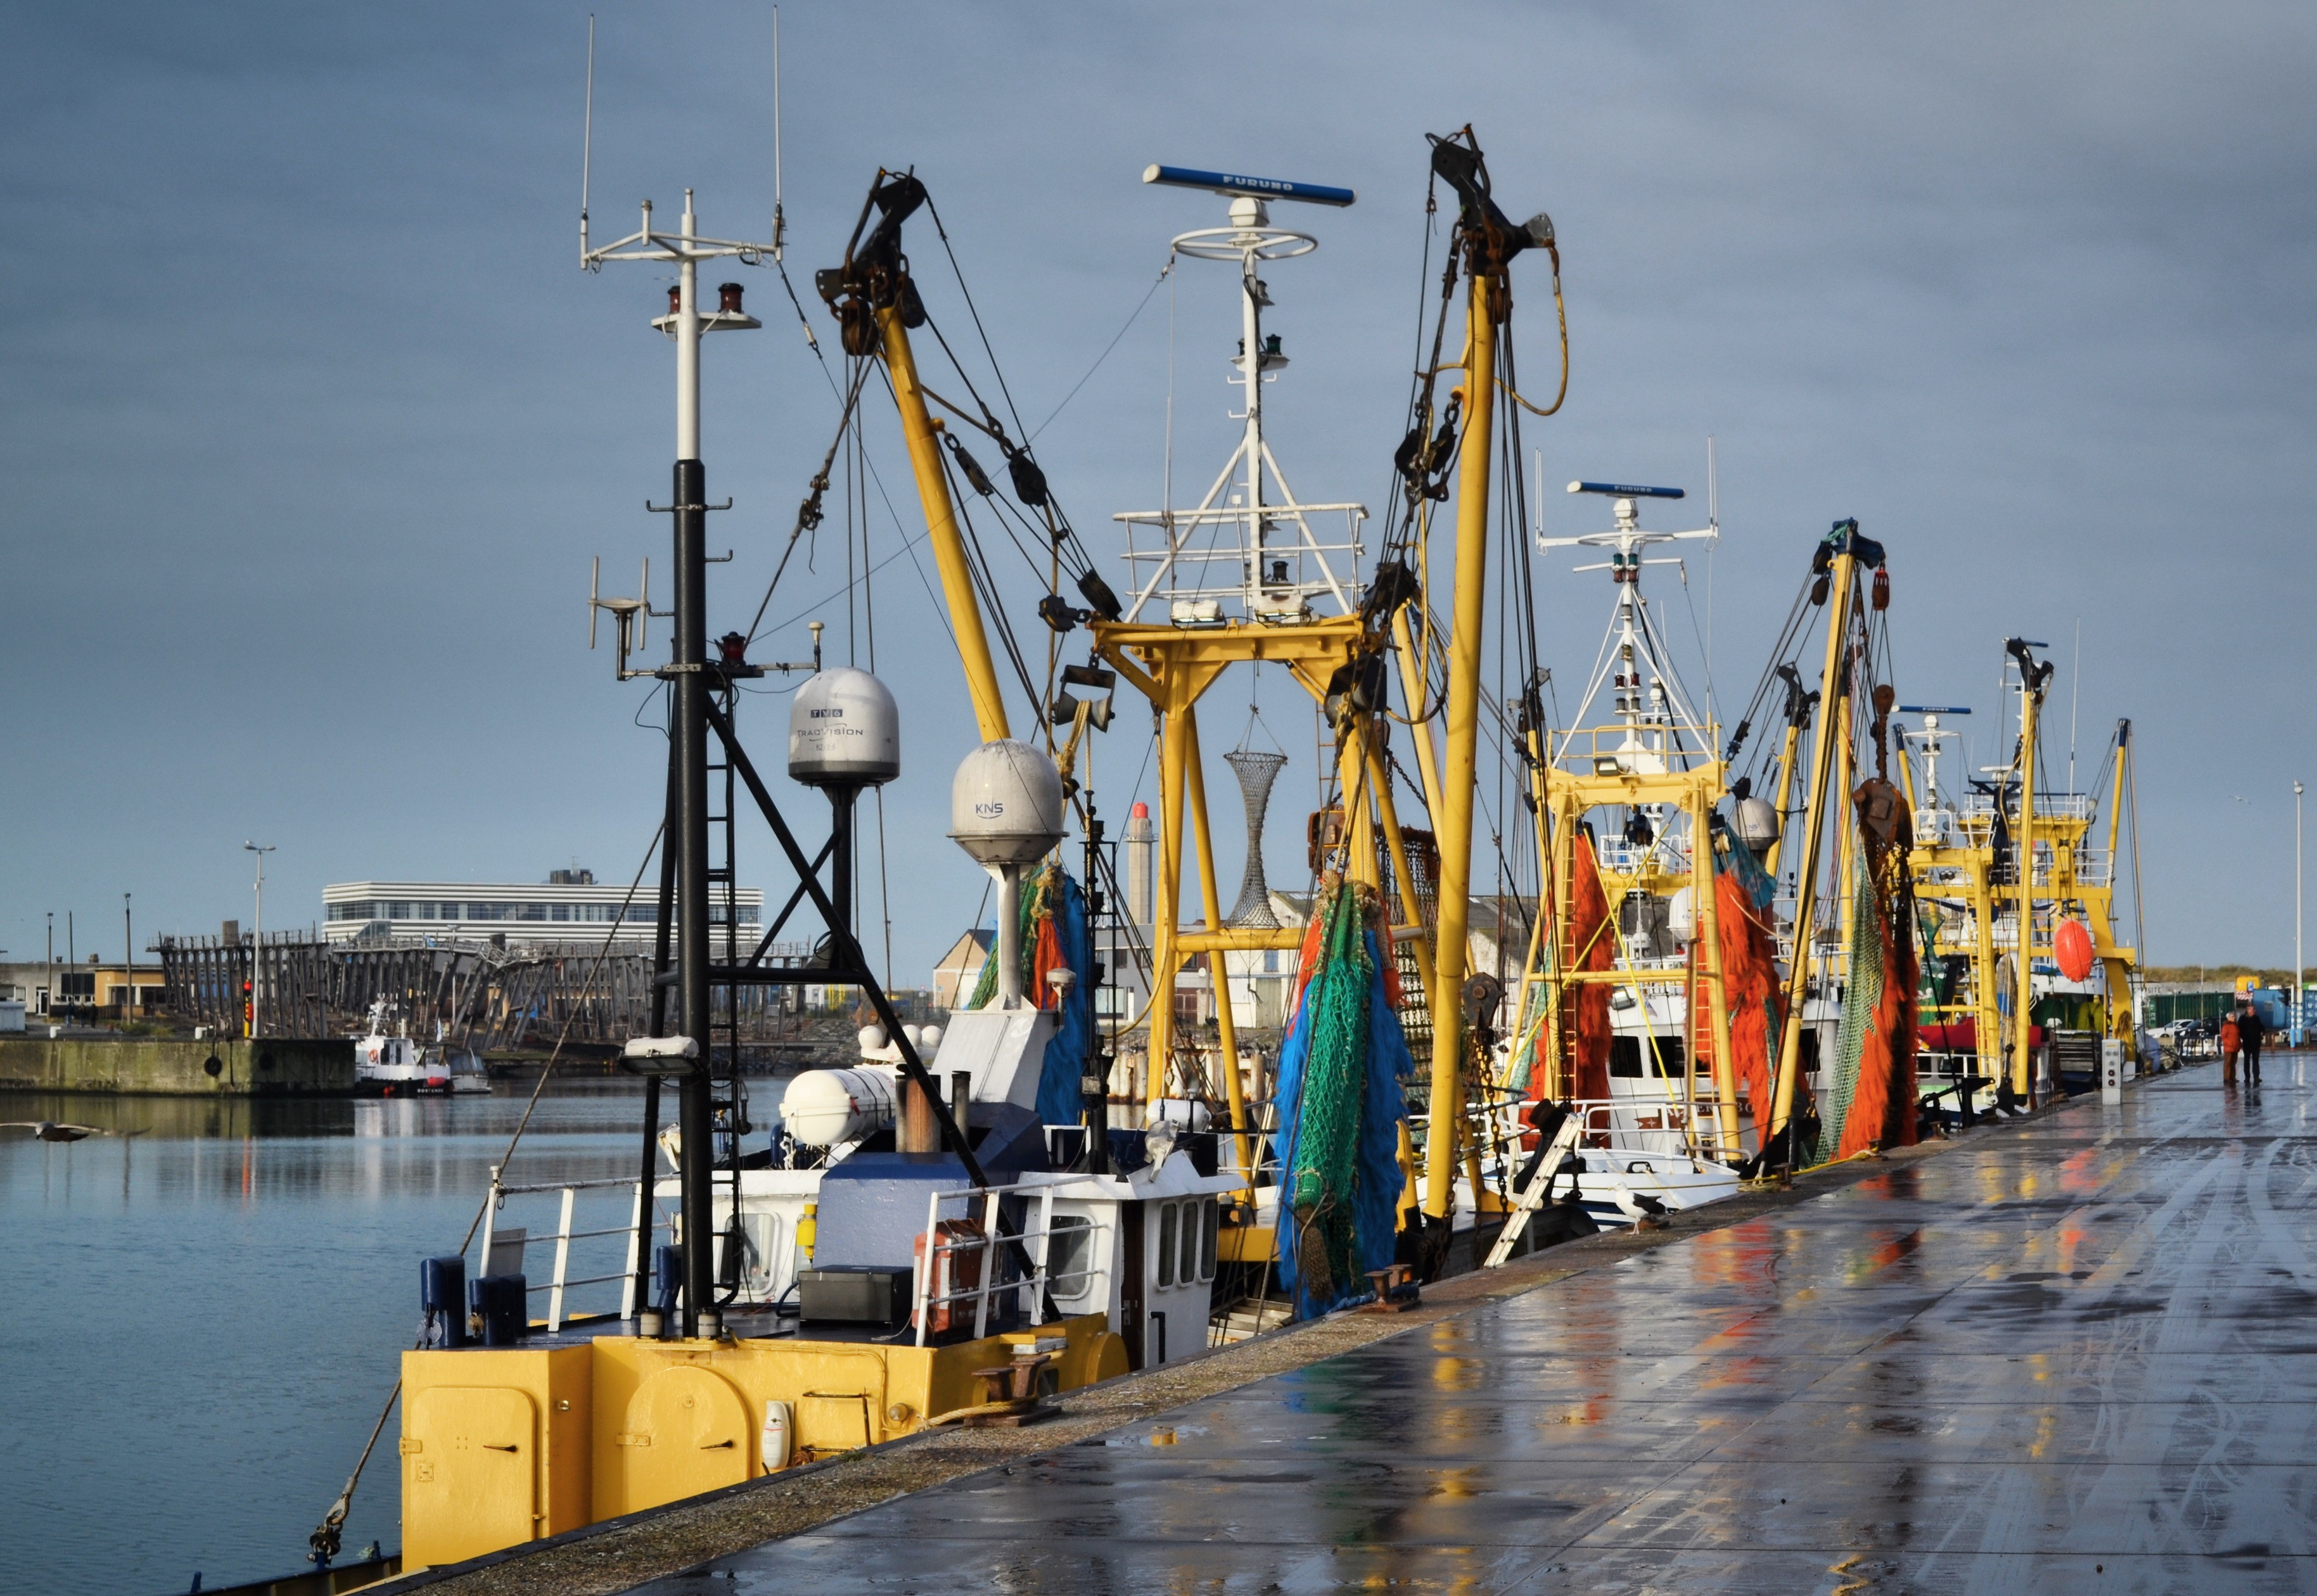 The ECR Group welcomes the EU lifeline for small-scale fisheries